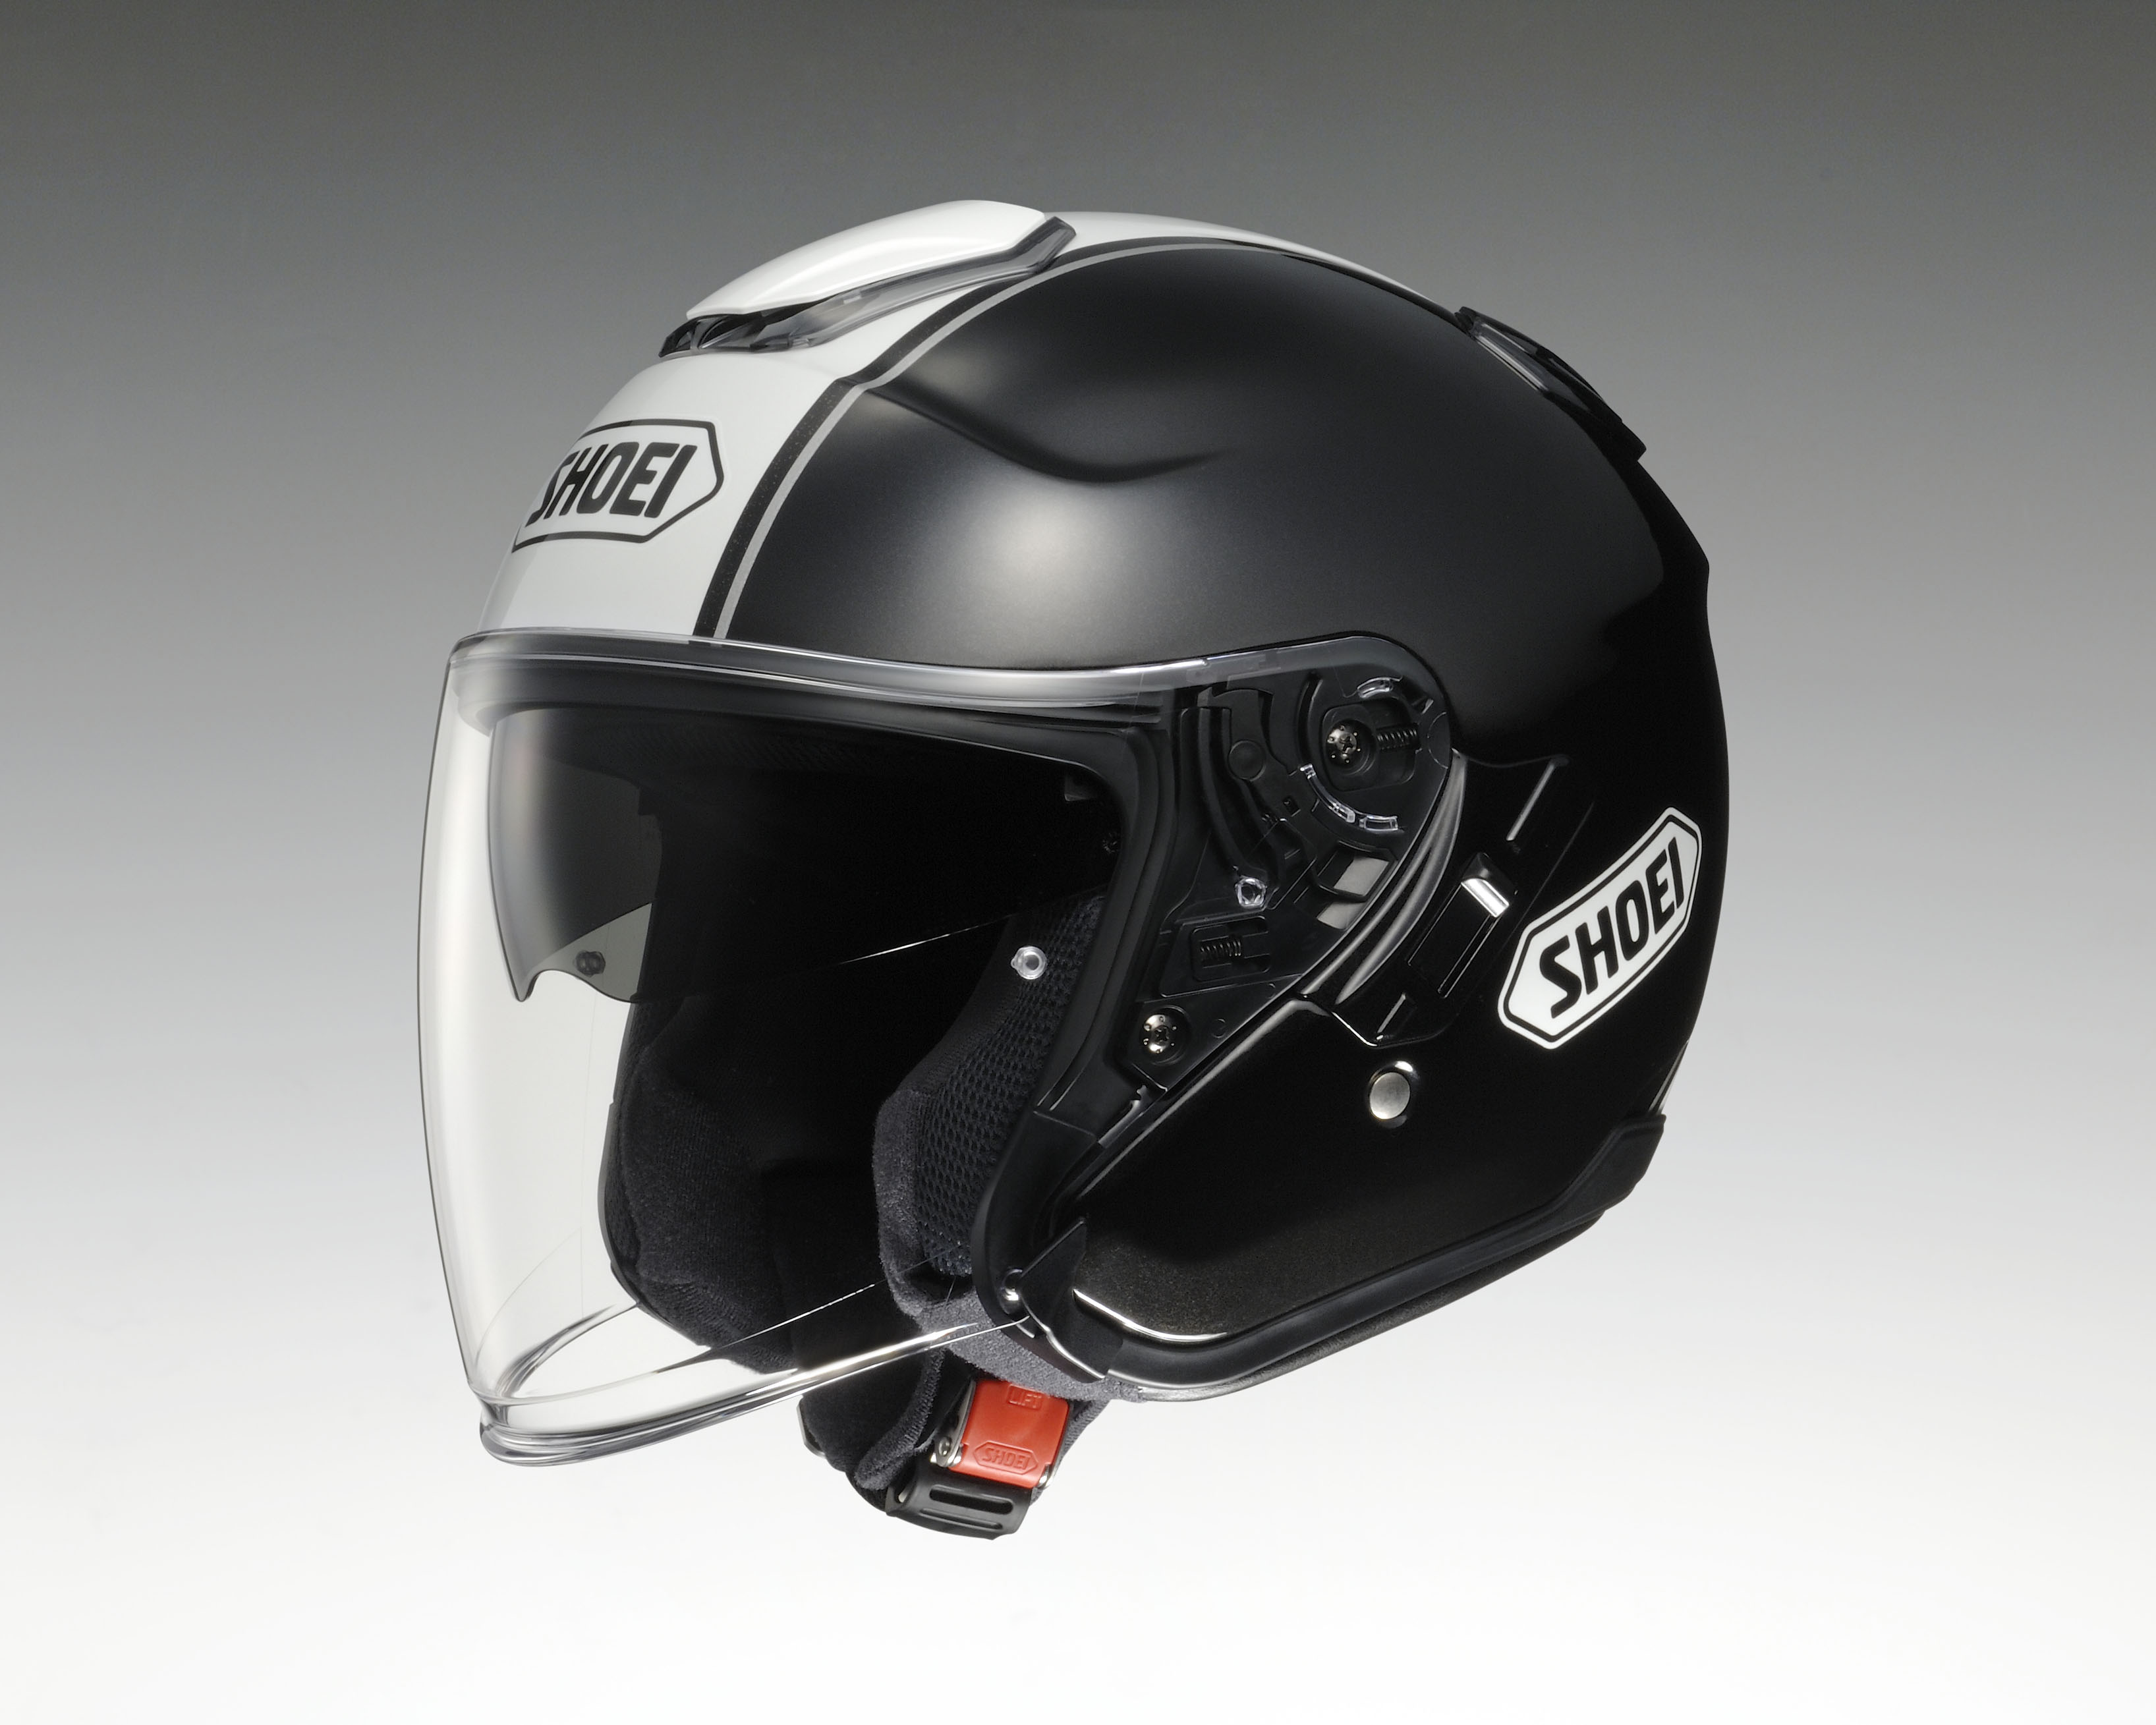 Casco Helmet Jet Shoei J-Cruise CORSO TC-5 moto scooter